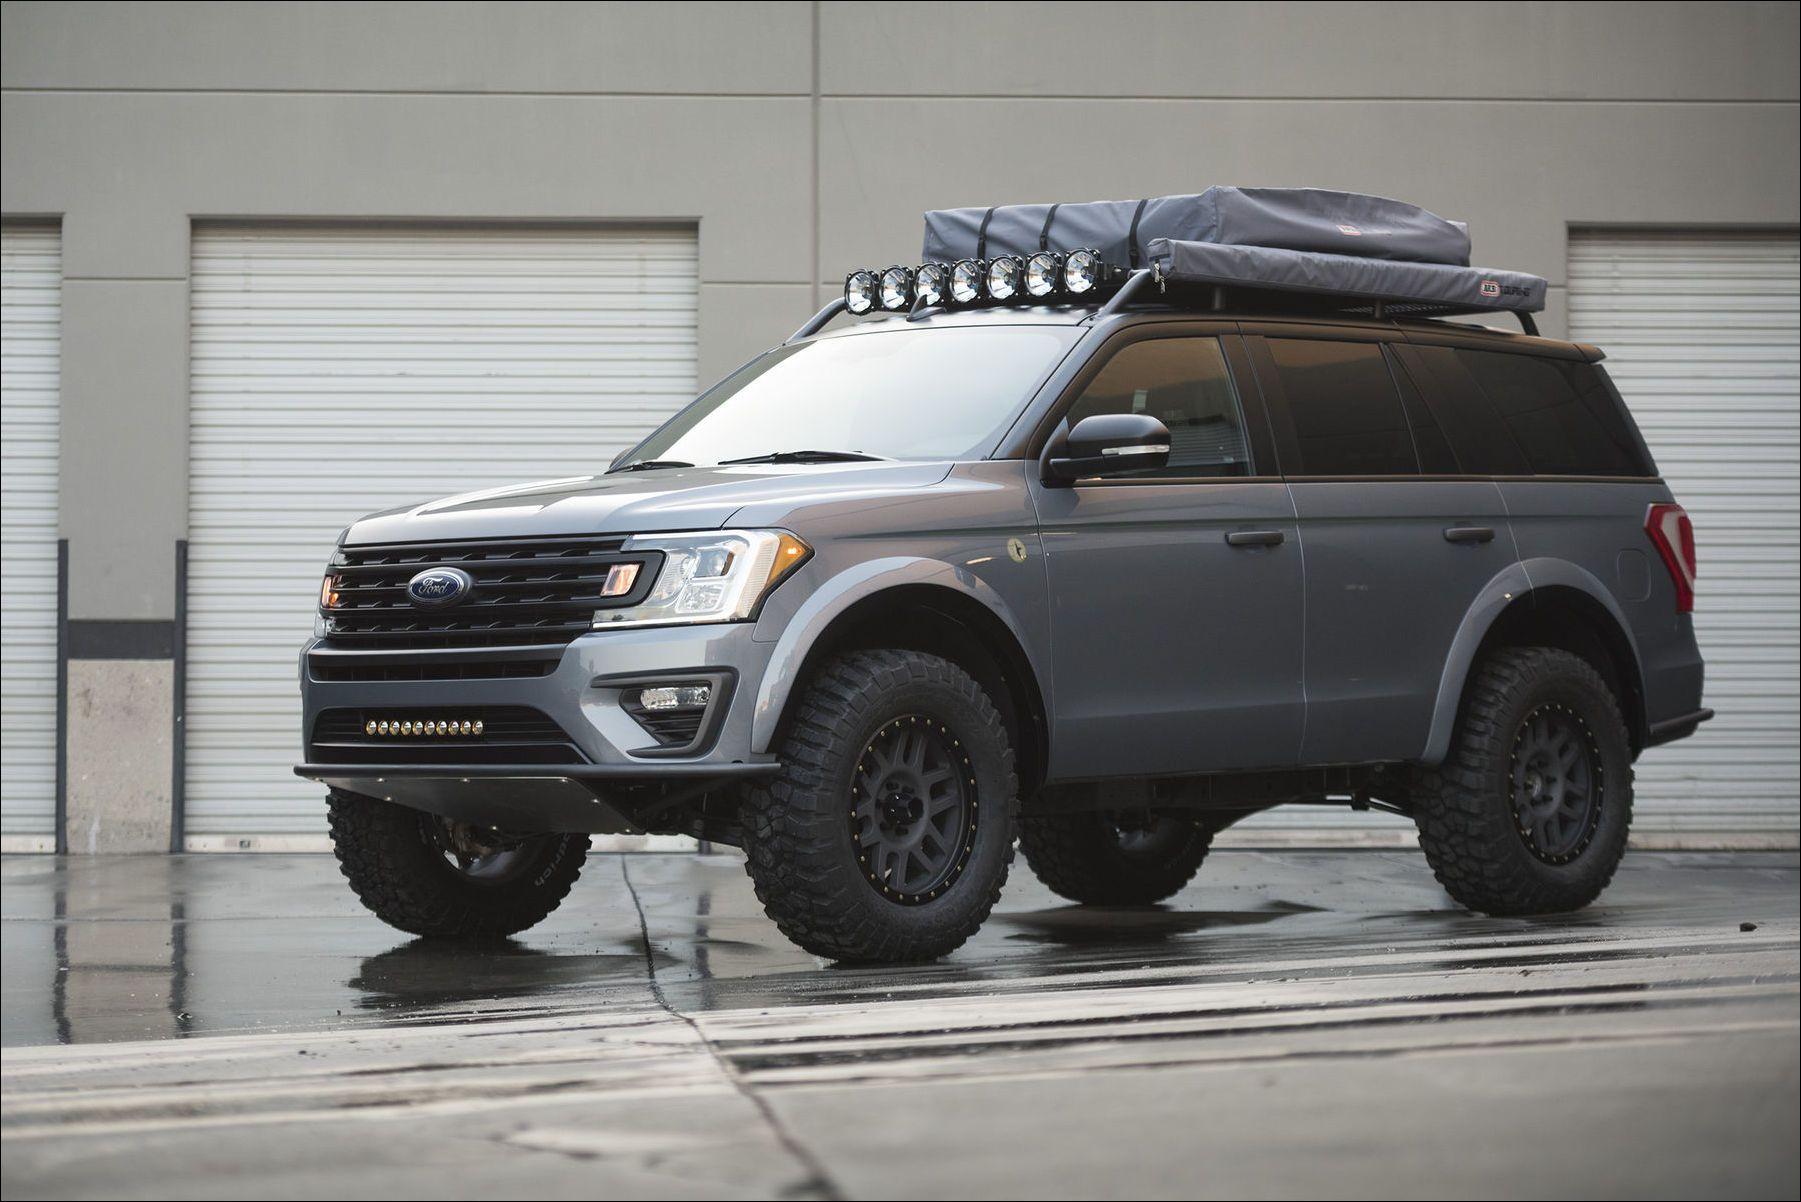 Suv Roof Top Tent In India Shake Handle Roof Top Tent Roof